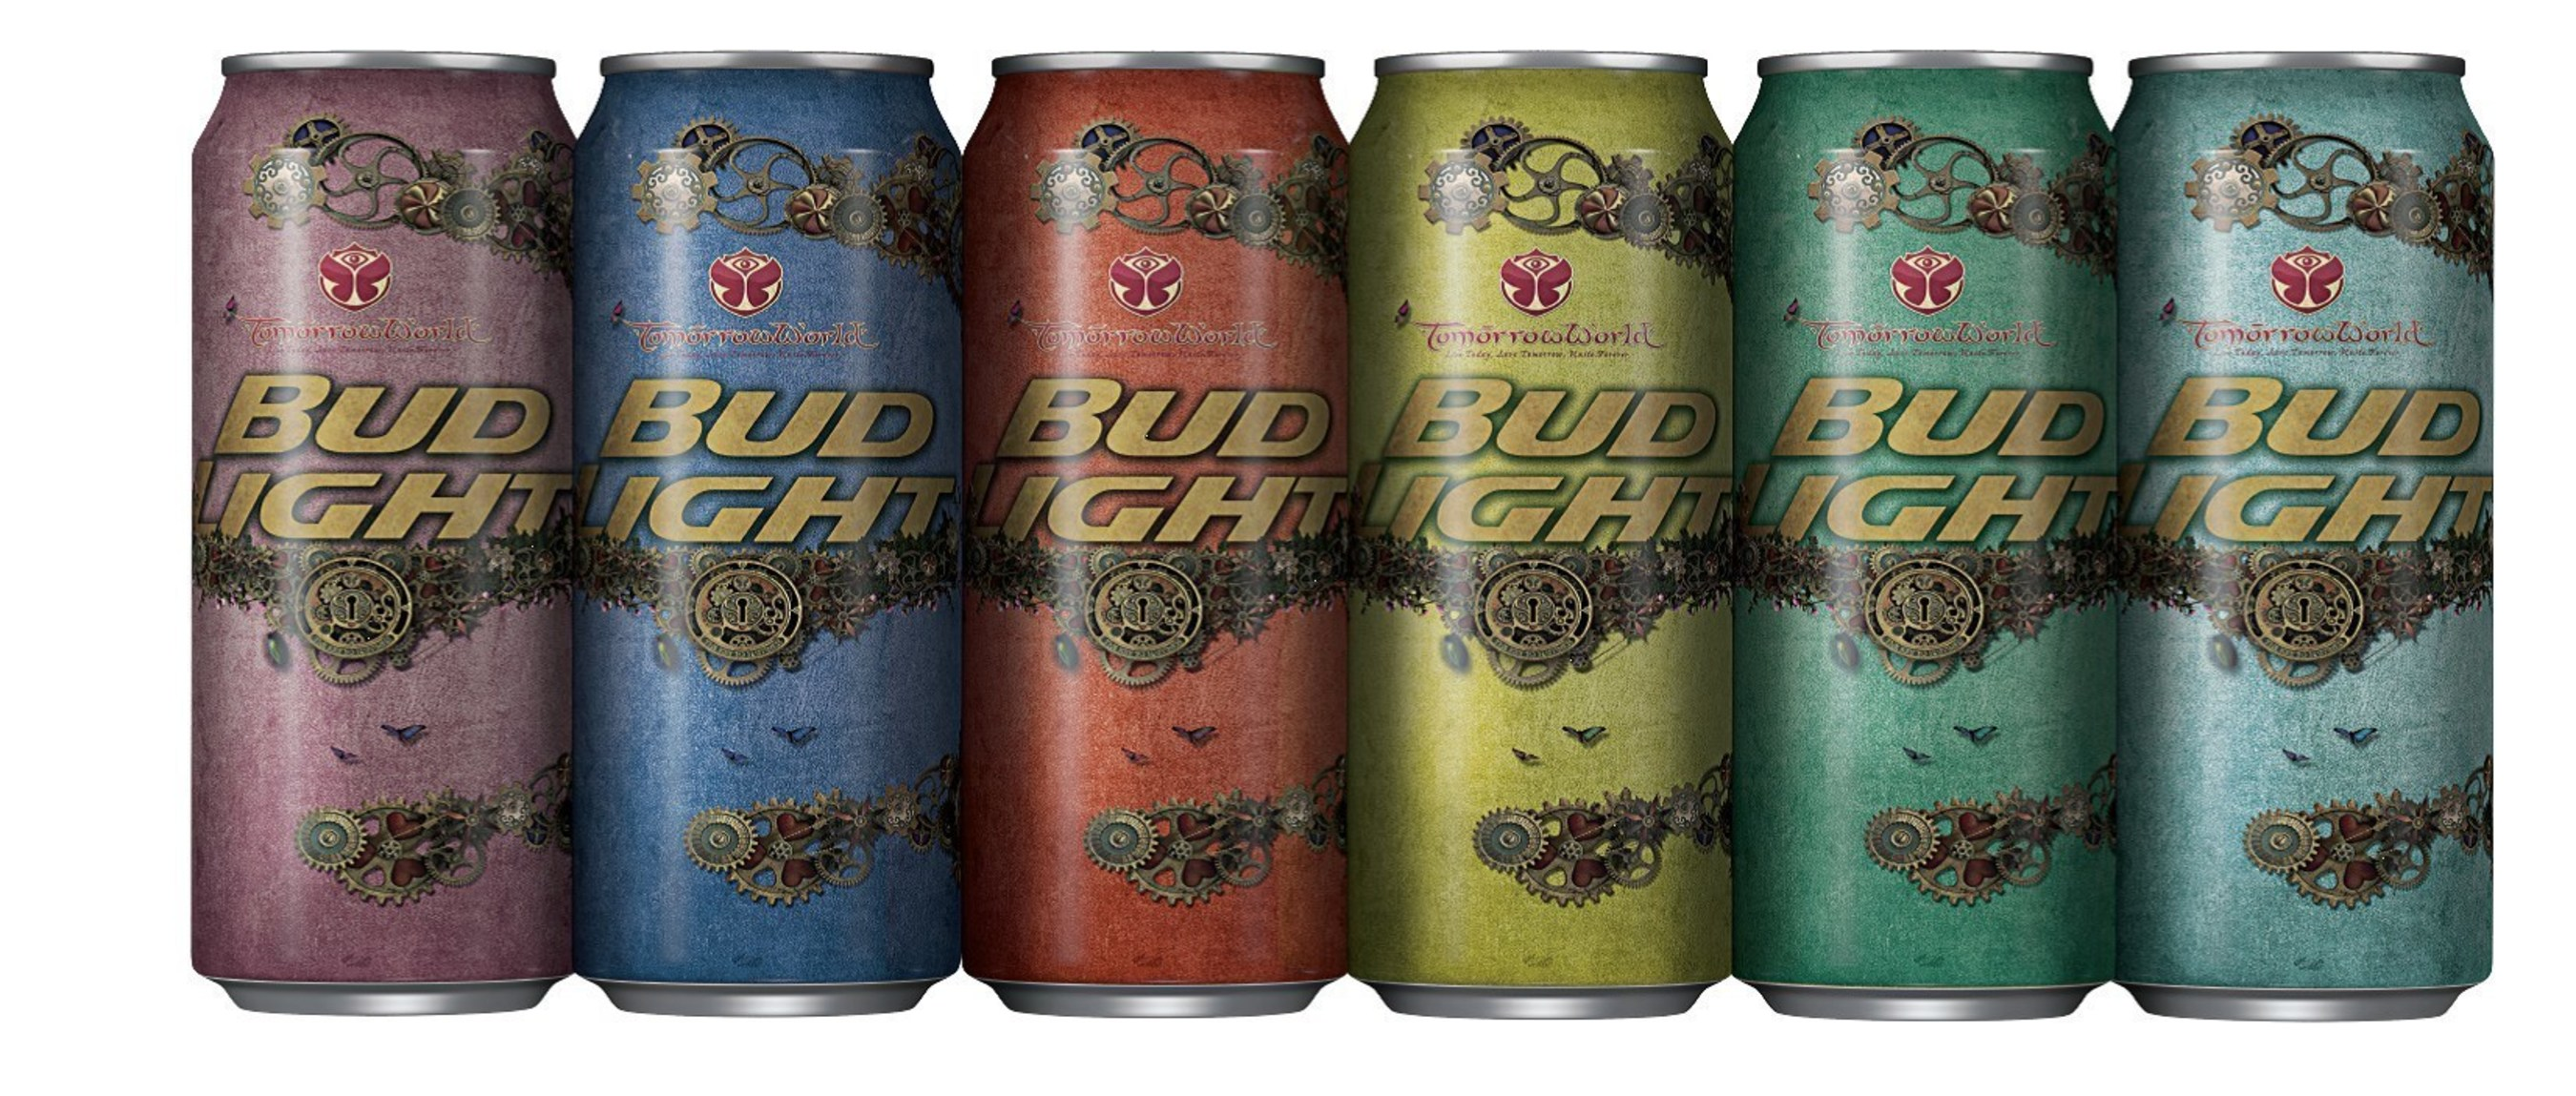 Bud Light Has Released An Exclusive Lineup Of TomorrowWorld Festival Cans  In Advance Of This Weekendu0027s